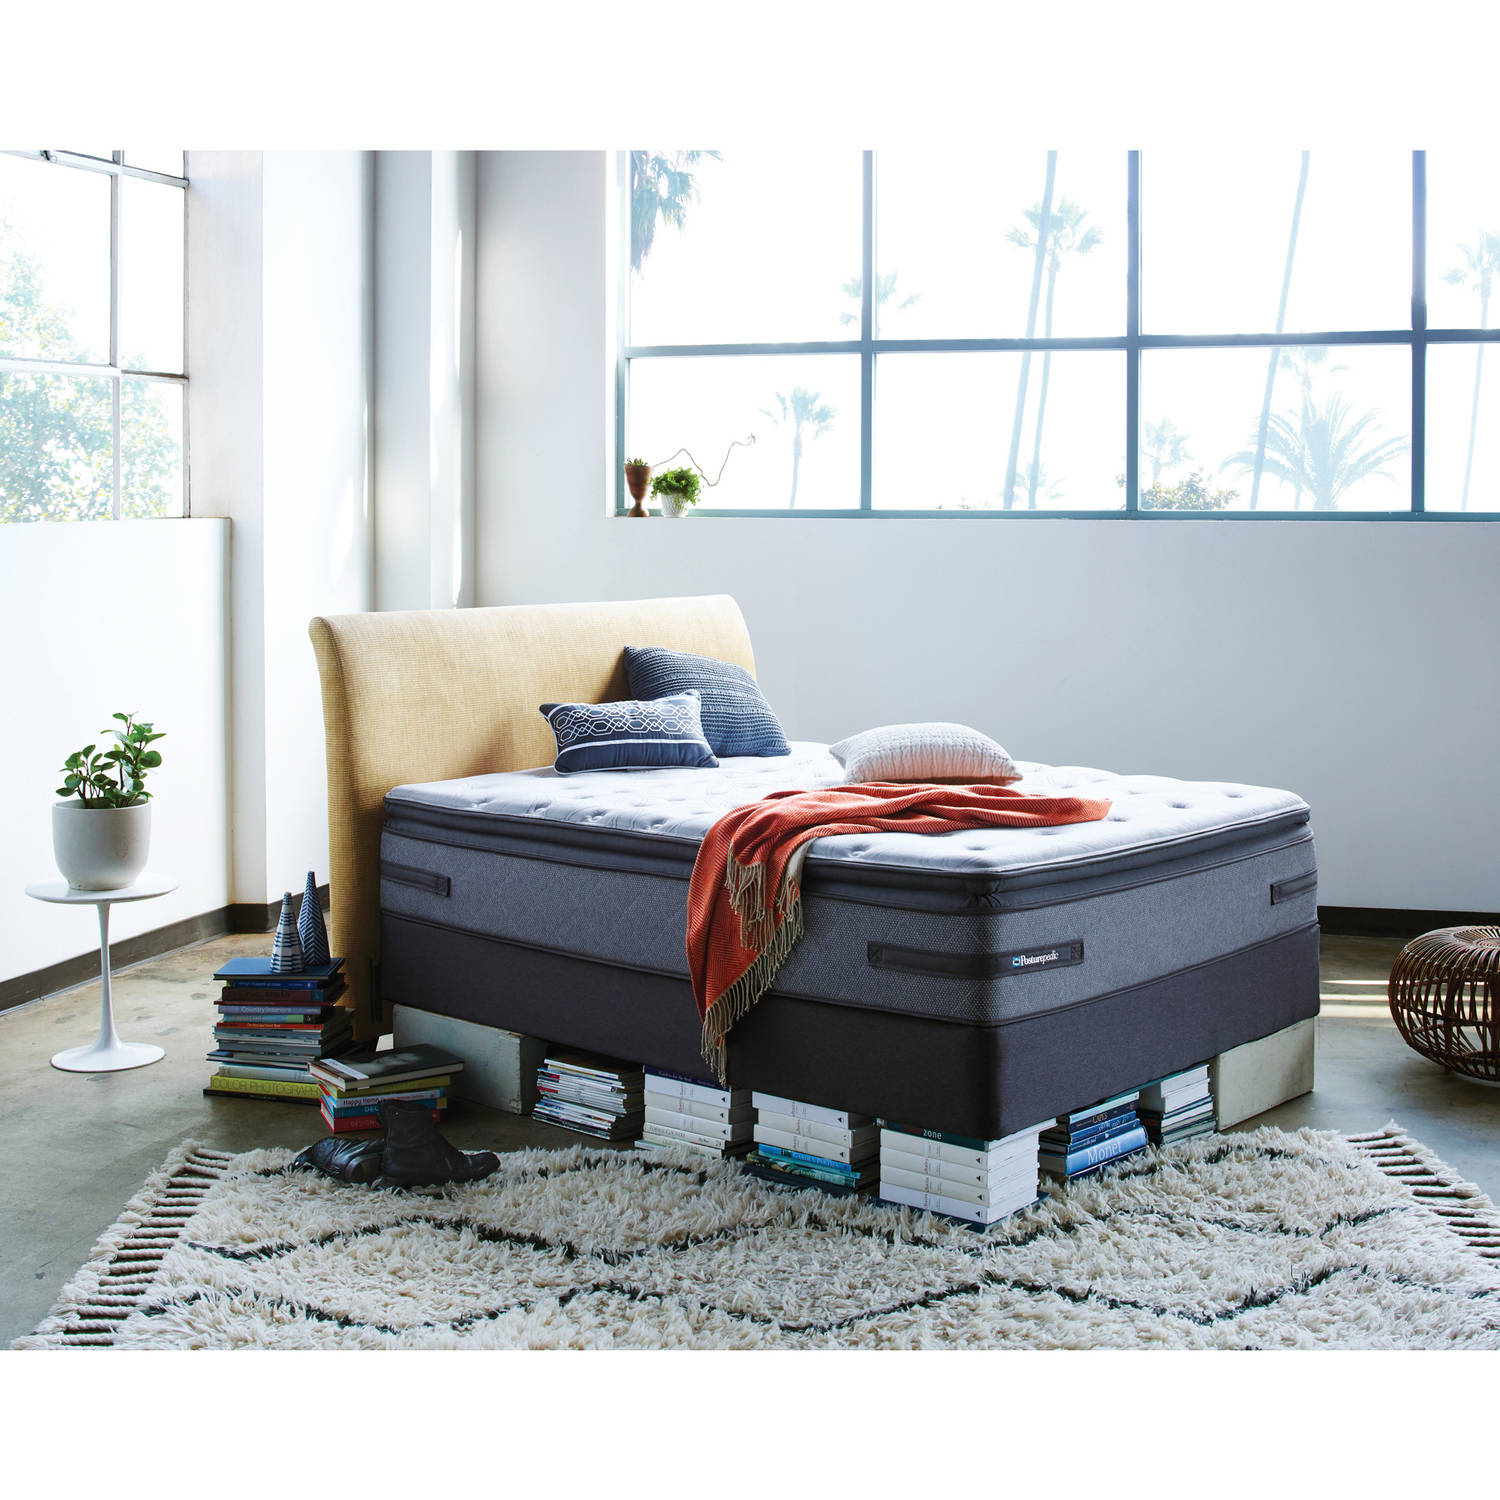 Sealy Posturepedic San Benito Plush Euro Pillowtop Mattress, Multiple Sizes